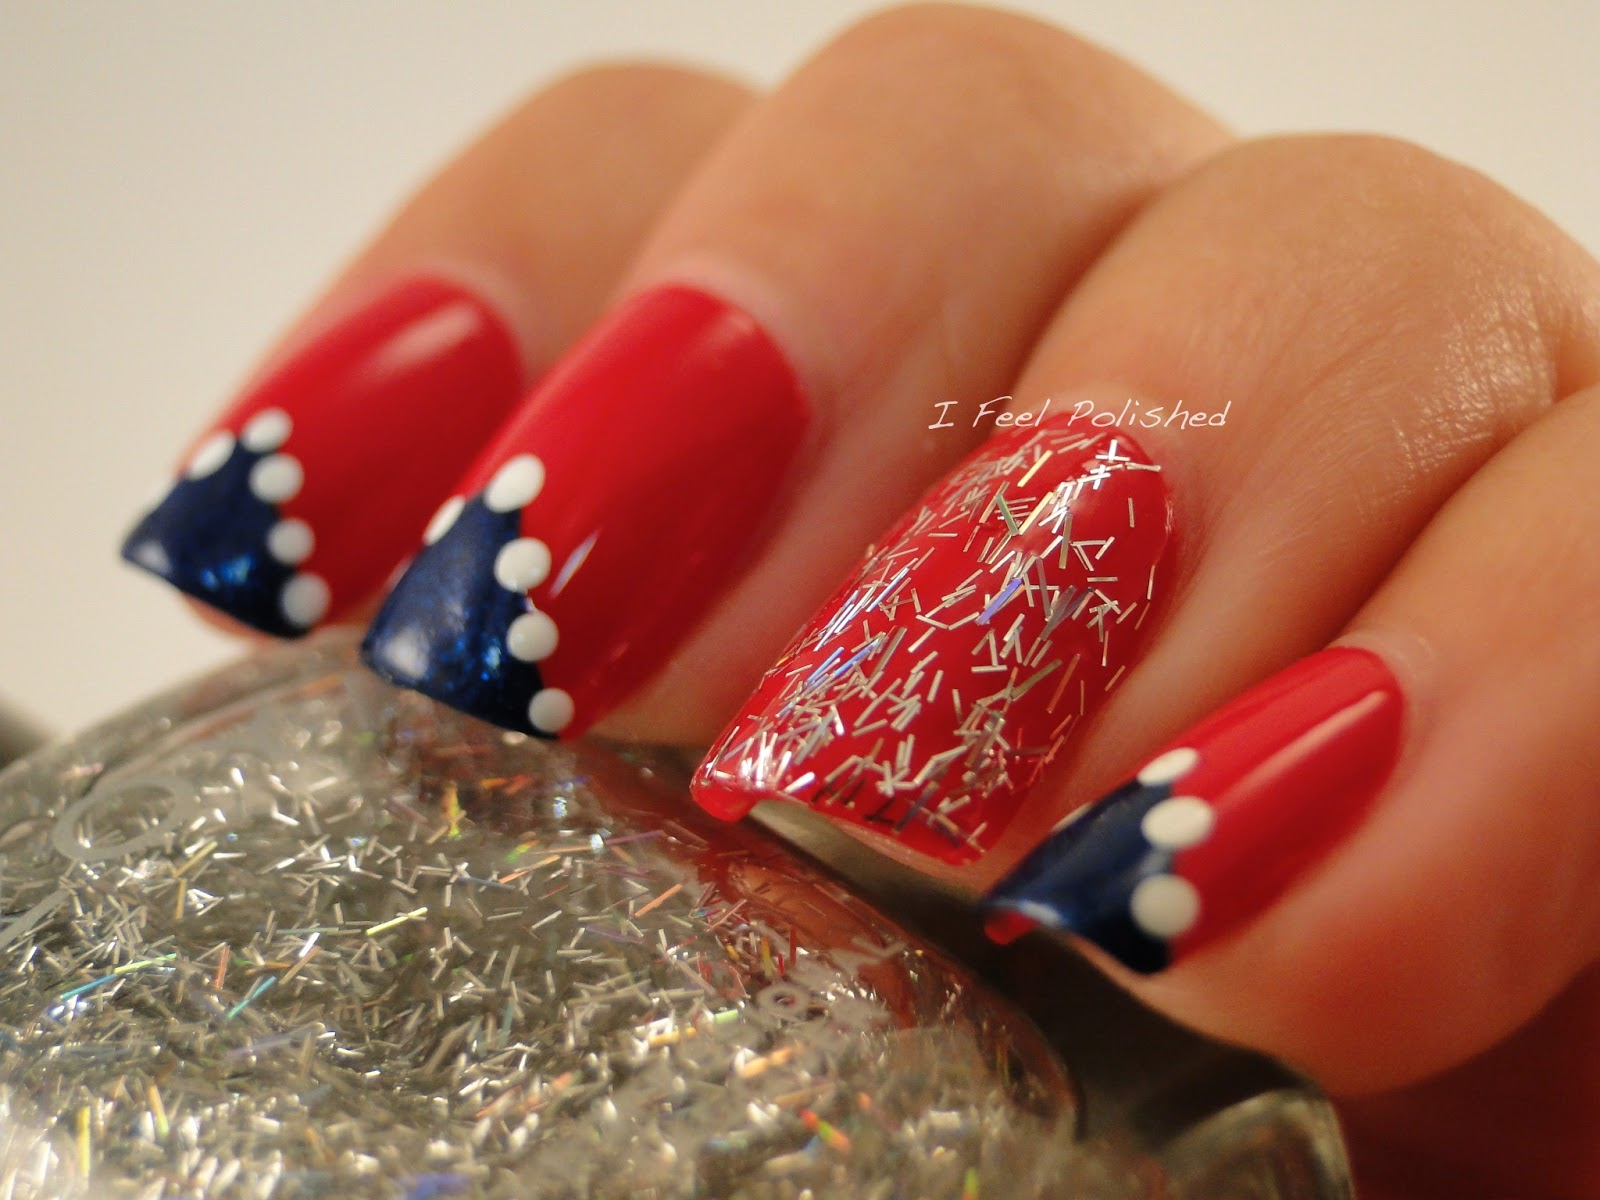 I feel polished june 2013 fourth of july nails solutioingenieria Choice Image